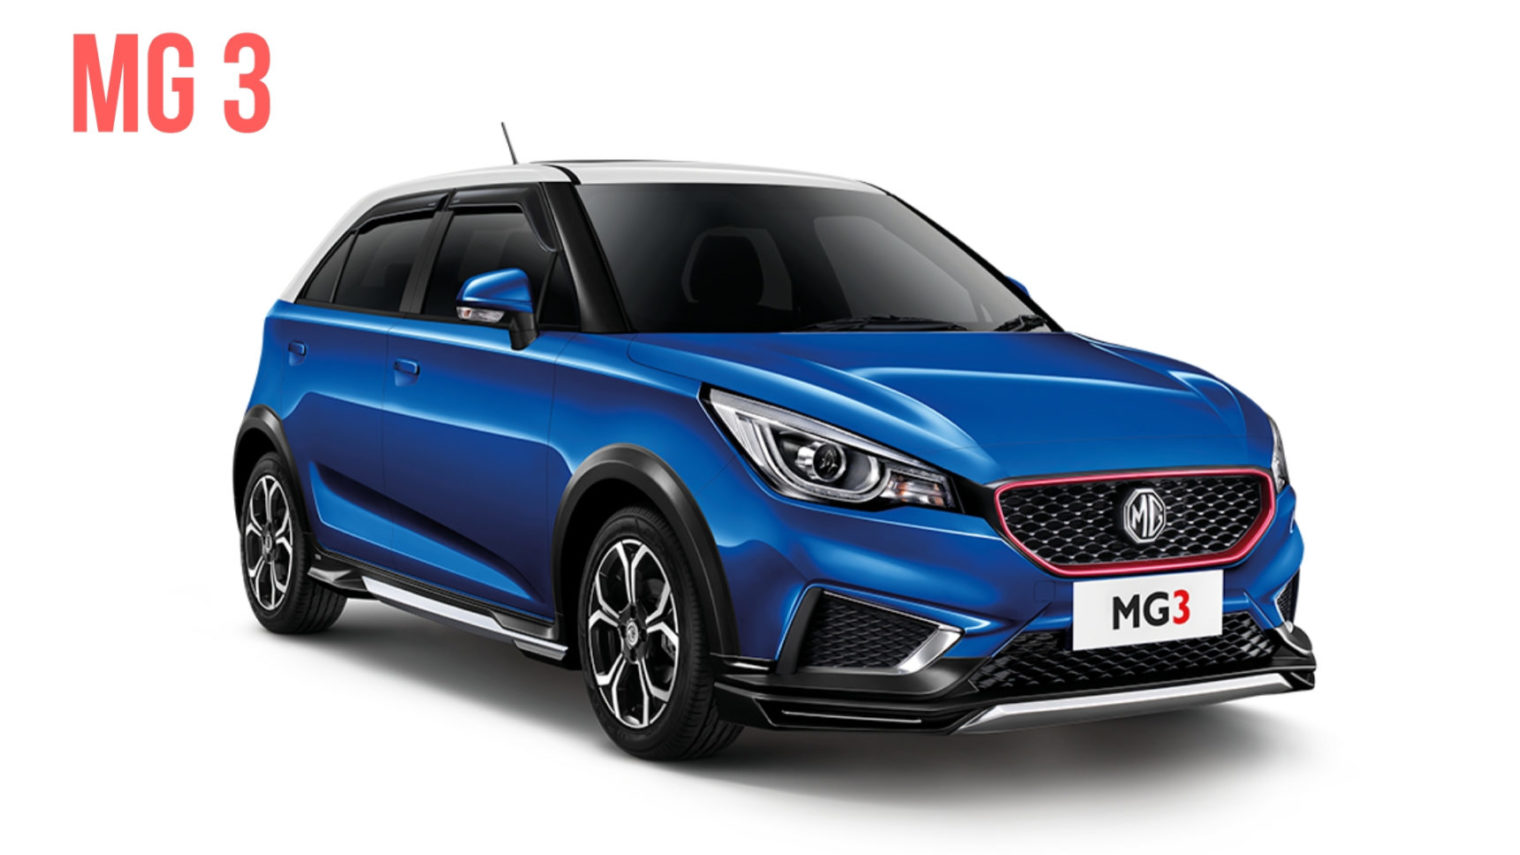 Mg 3 Hatchback Showcased In India For The First Time